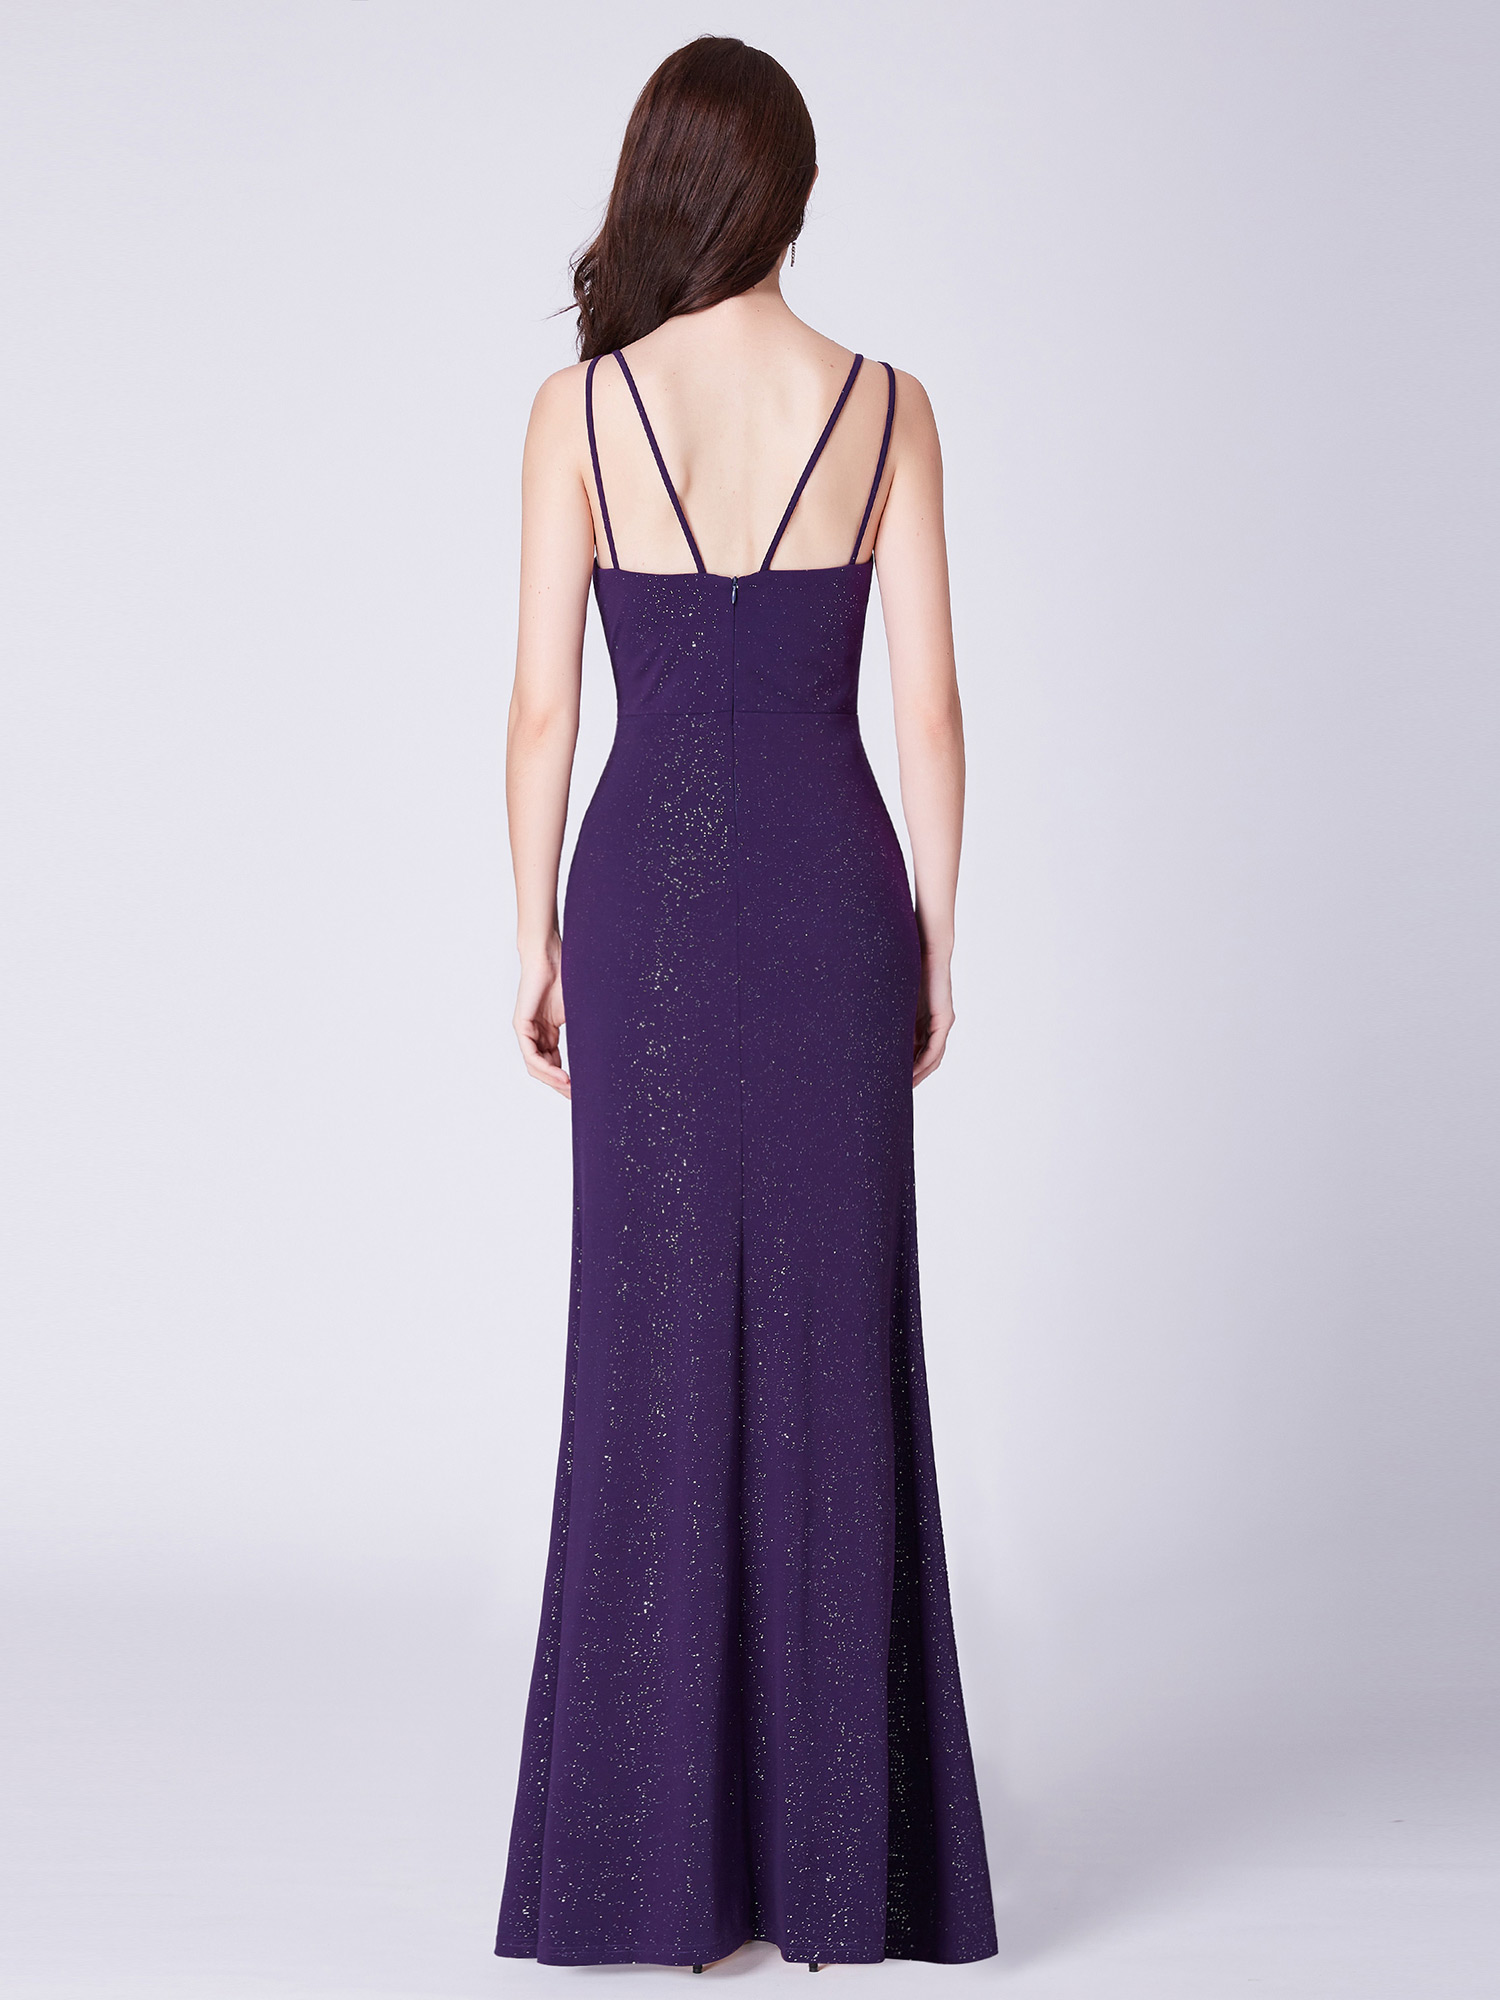 Ever-Pretty-US-Split-Homecoming-Formal-Evening-Party-Dresses-Cocktail-Prom-Gown thumbnail 10